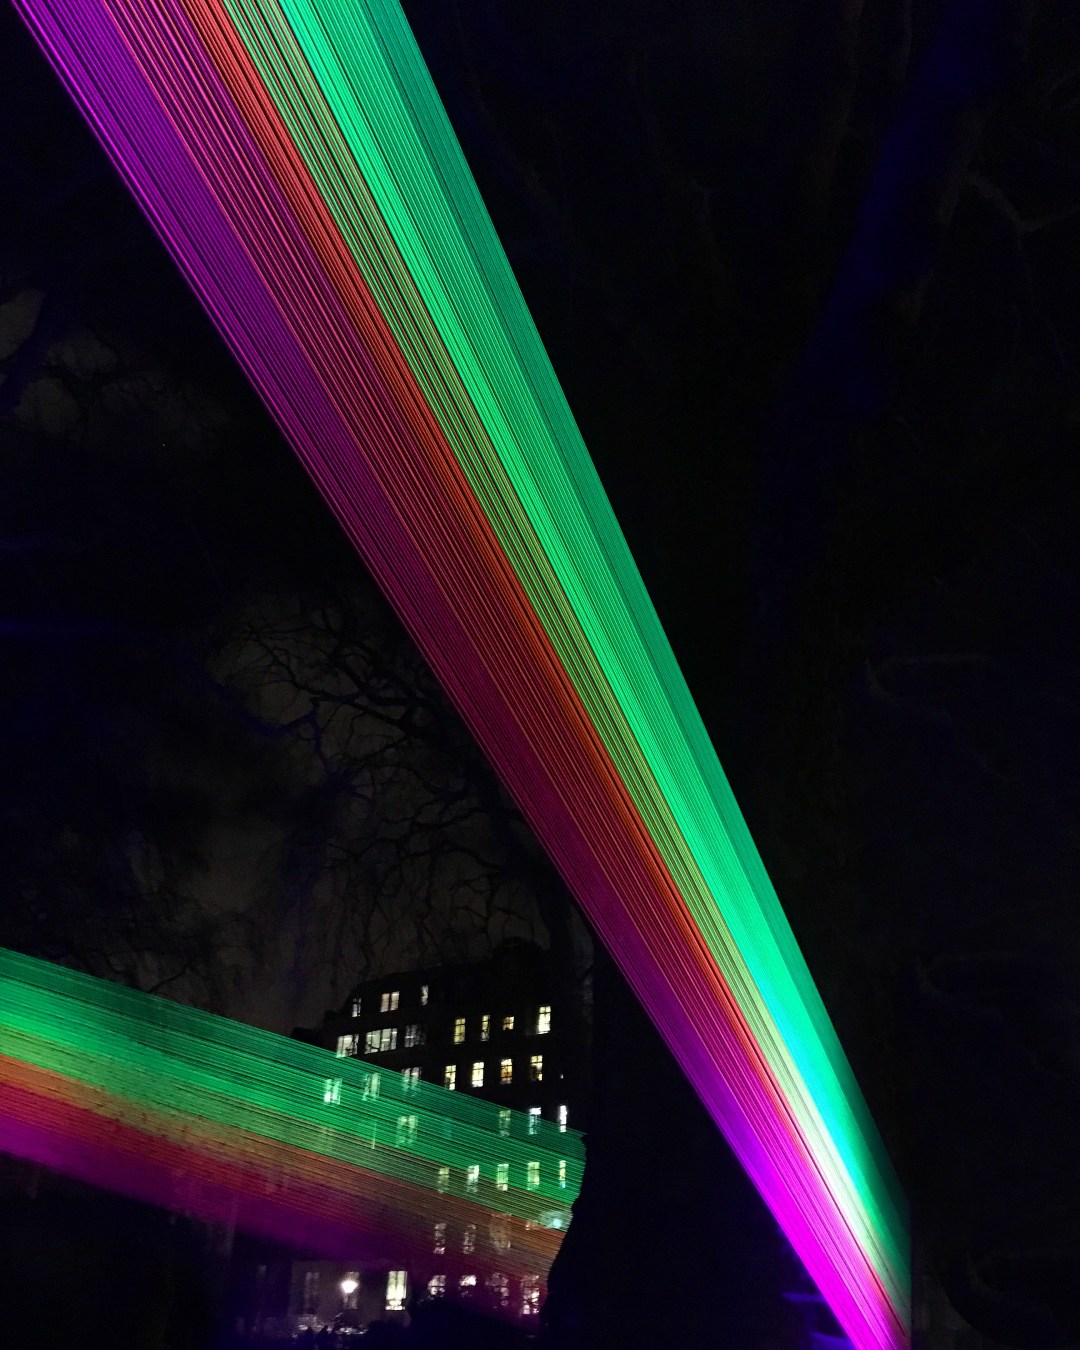 Lumiere London: Me at 24 - reflections on a year of being 24, thinking about all that was achieved, done, and changed in the past year.